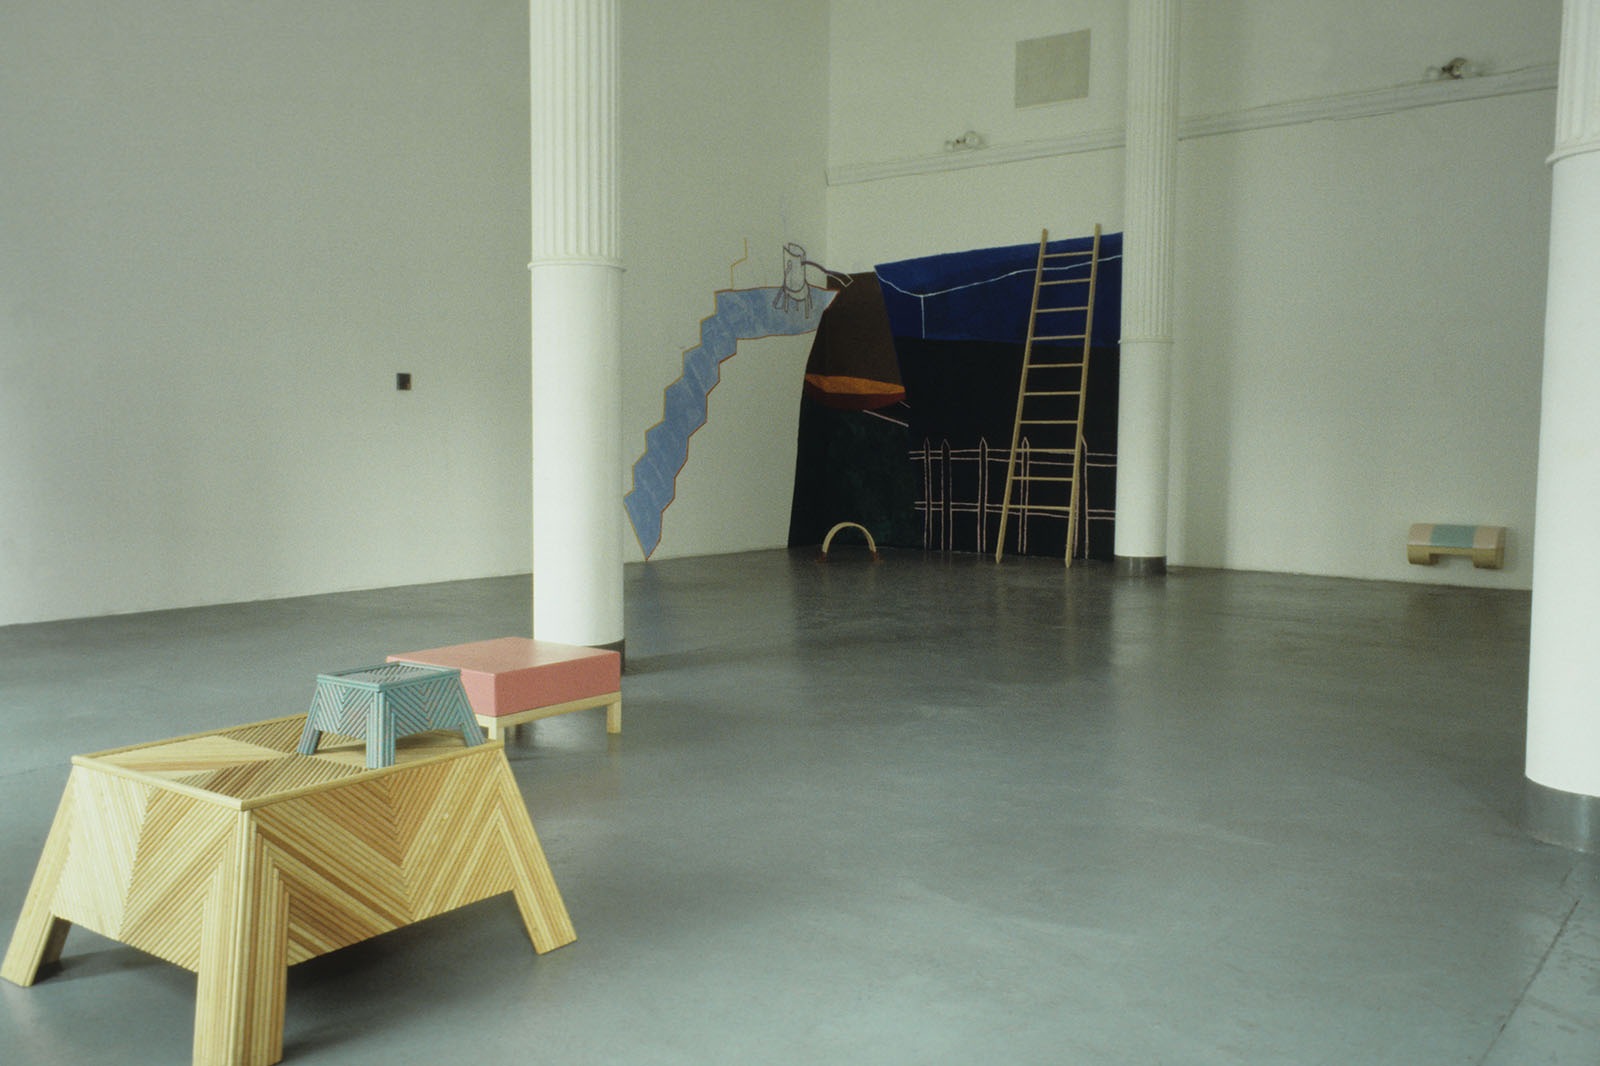 Color photograph of art installations in a gallery.